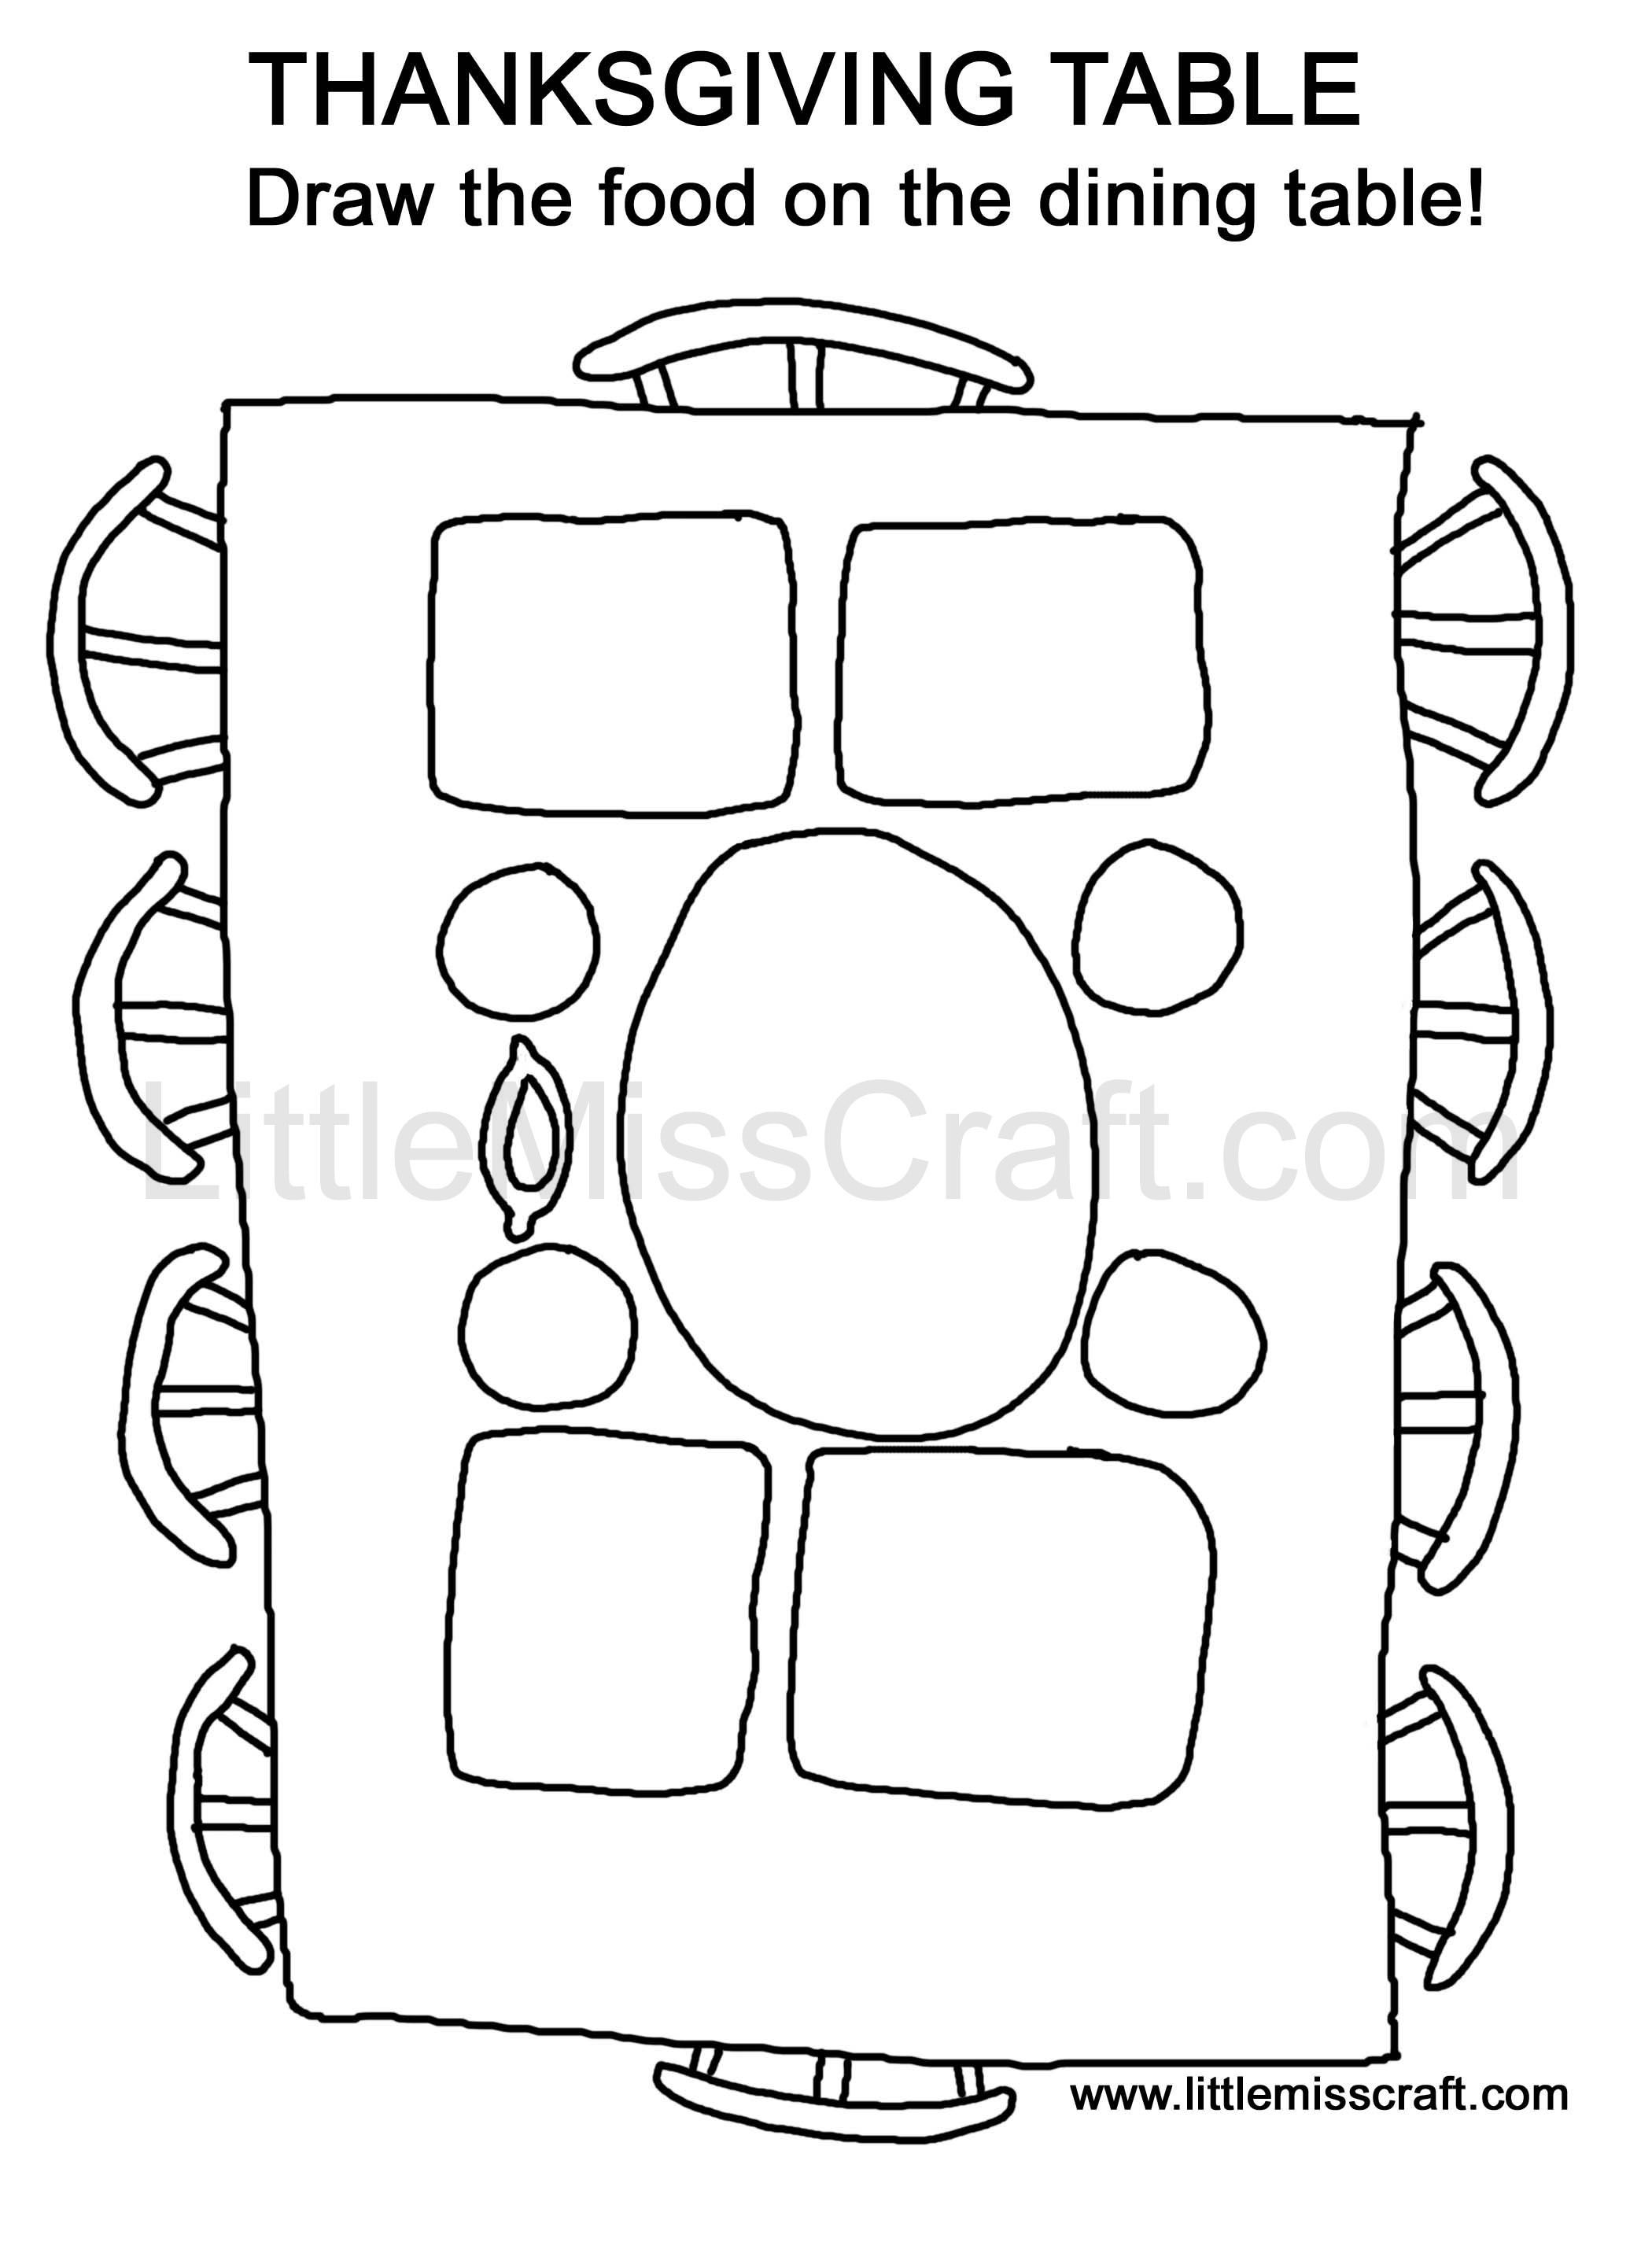 A fun thanksgiving dinner table coloring doodle activity Print at